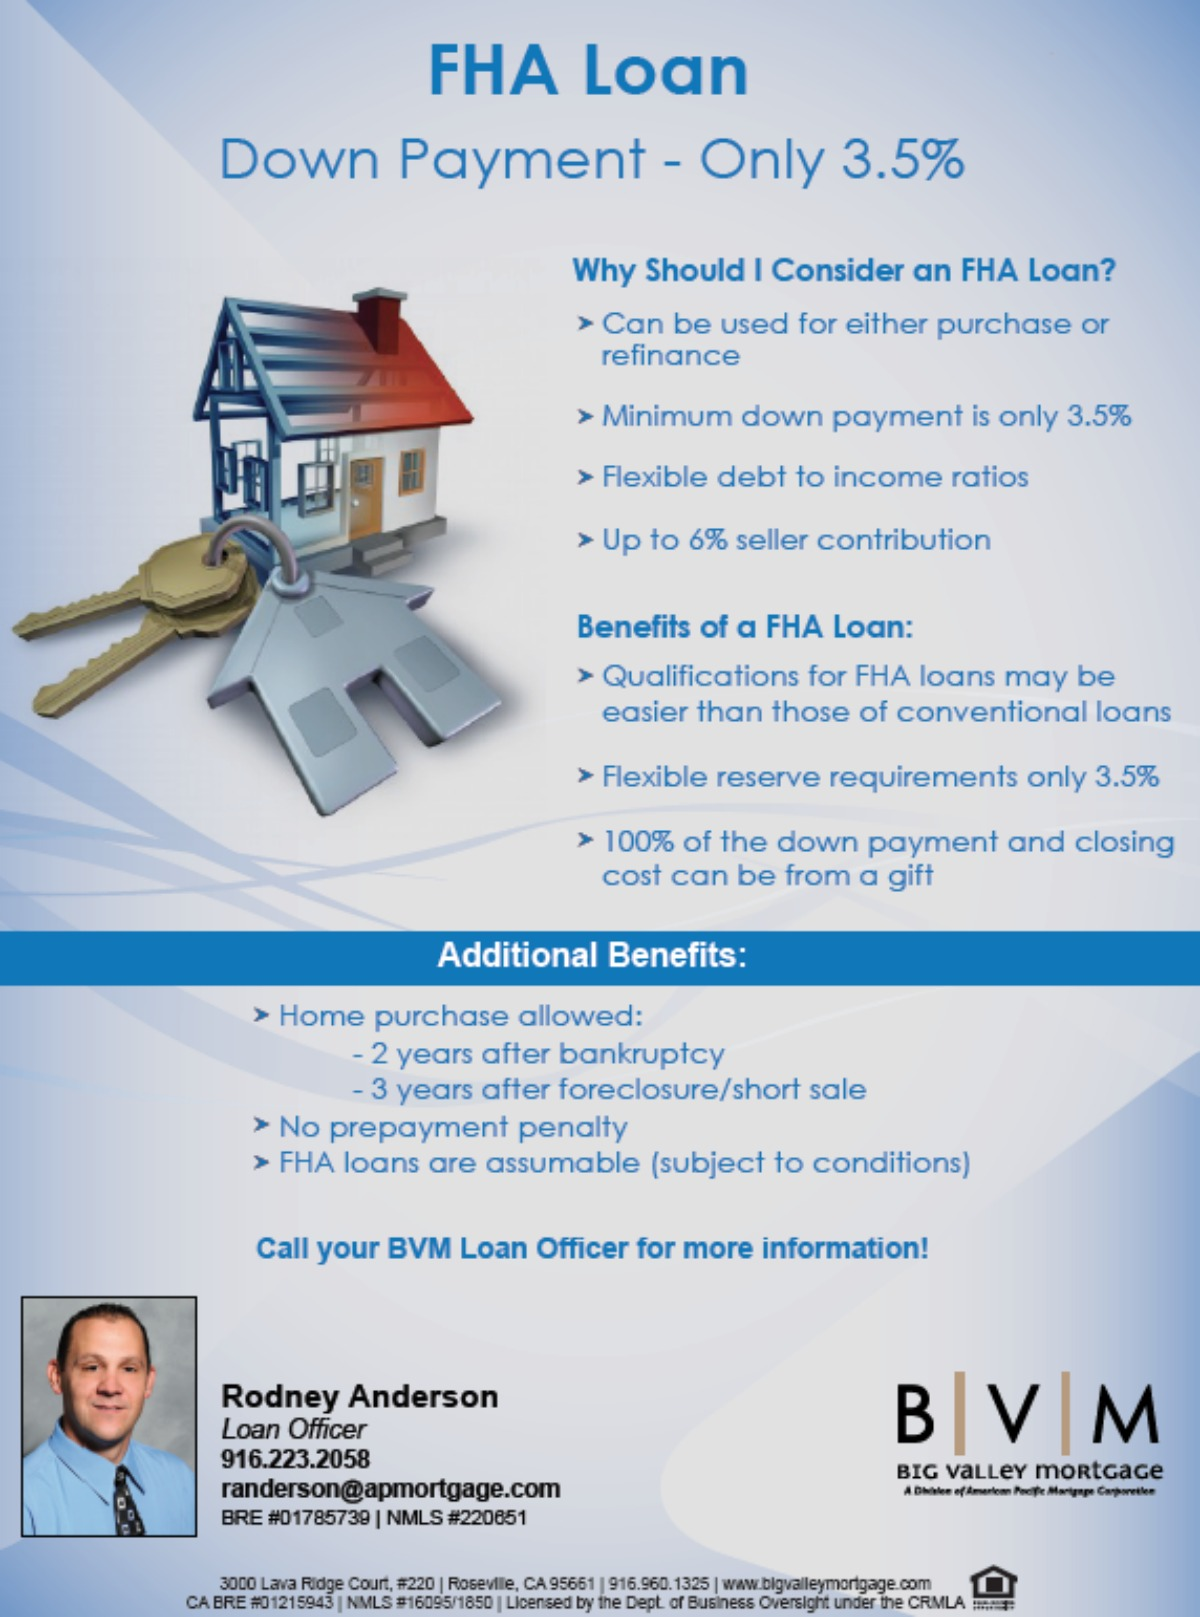 RODNEY ANDERSON Loan Officer with BIG VALLEY MORTGAGE shares FHA loan info